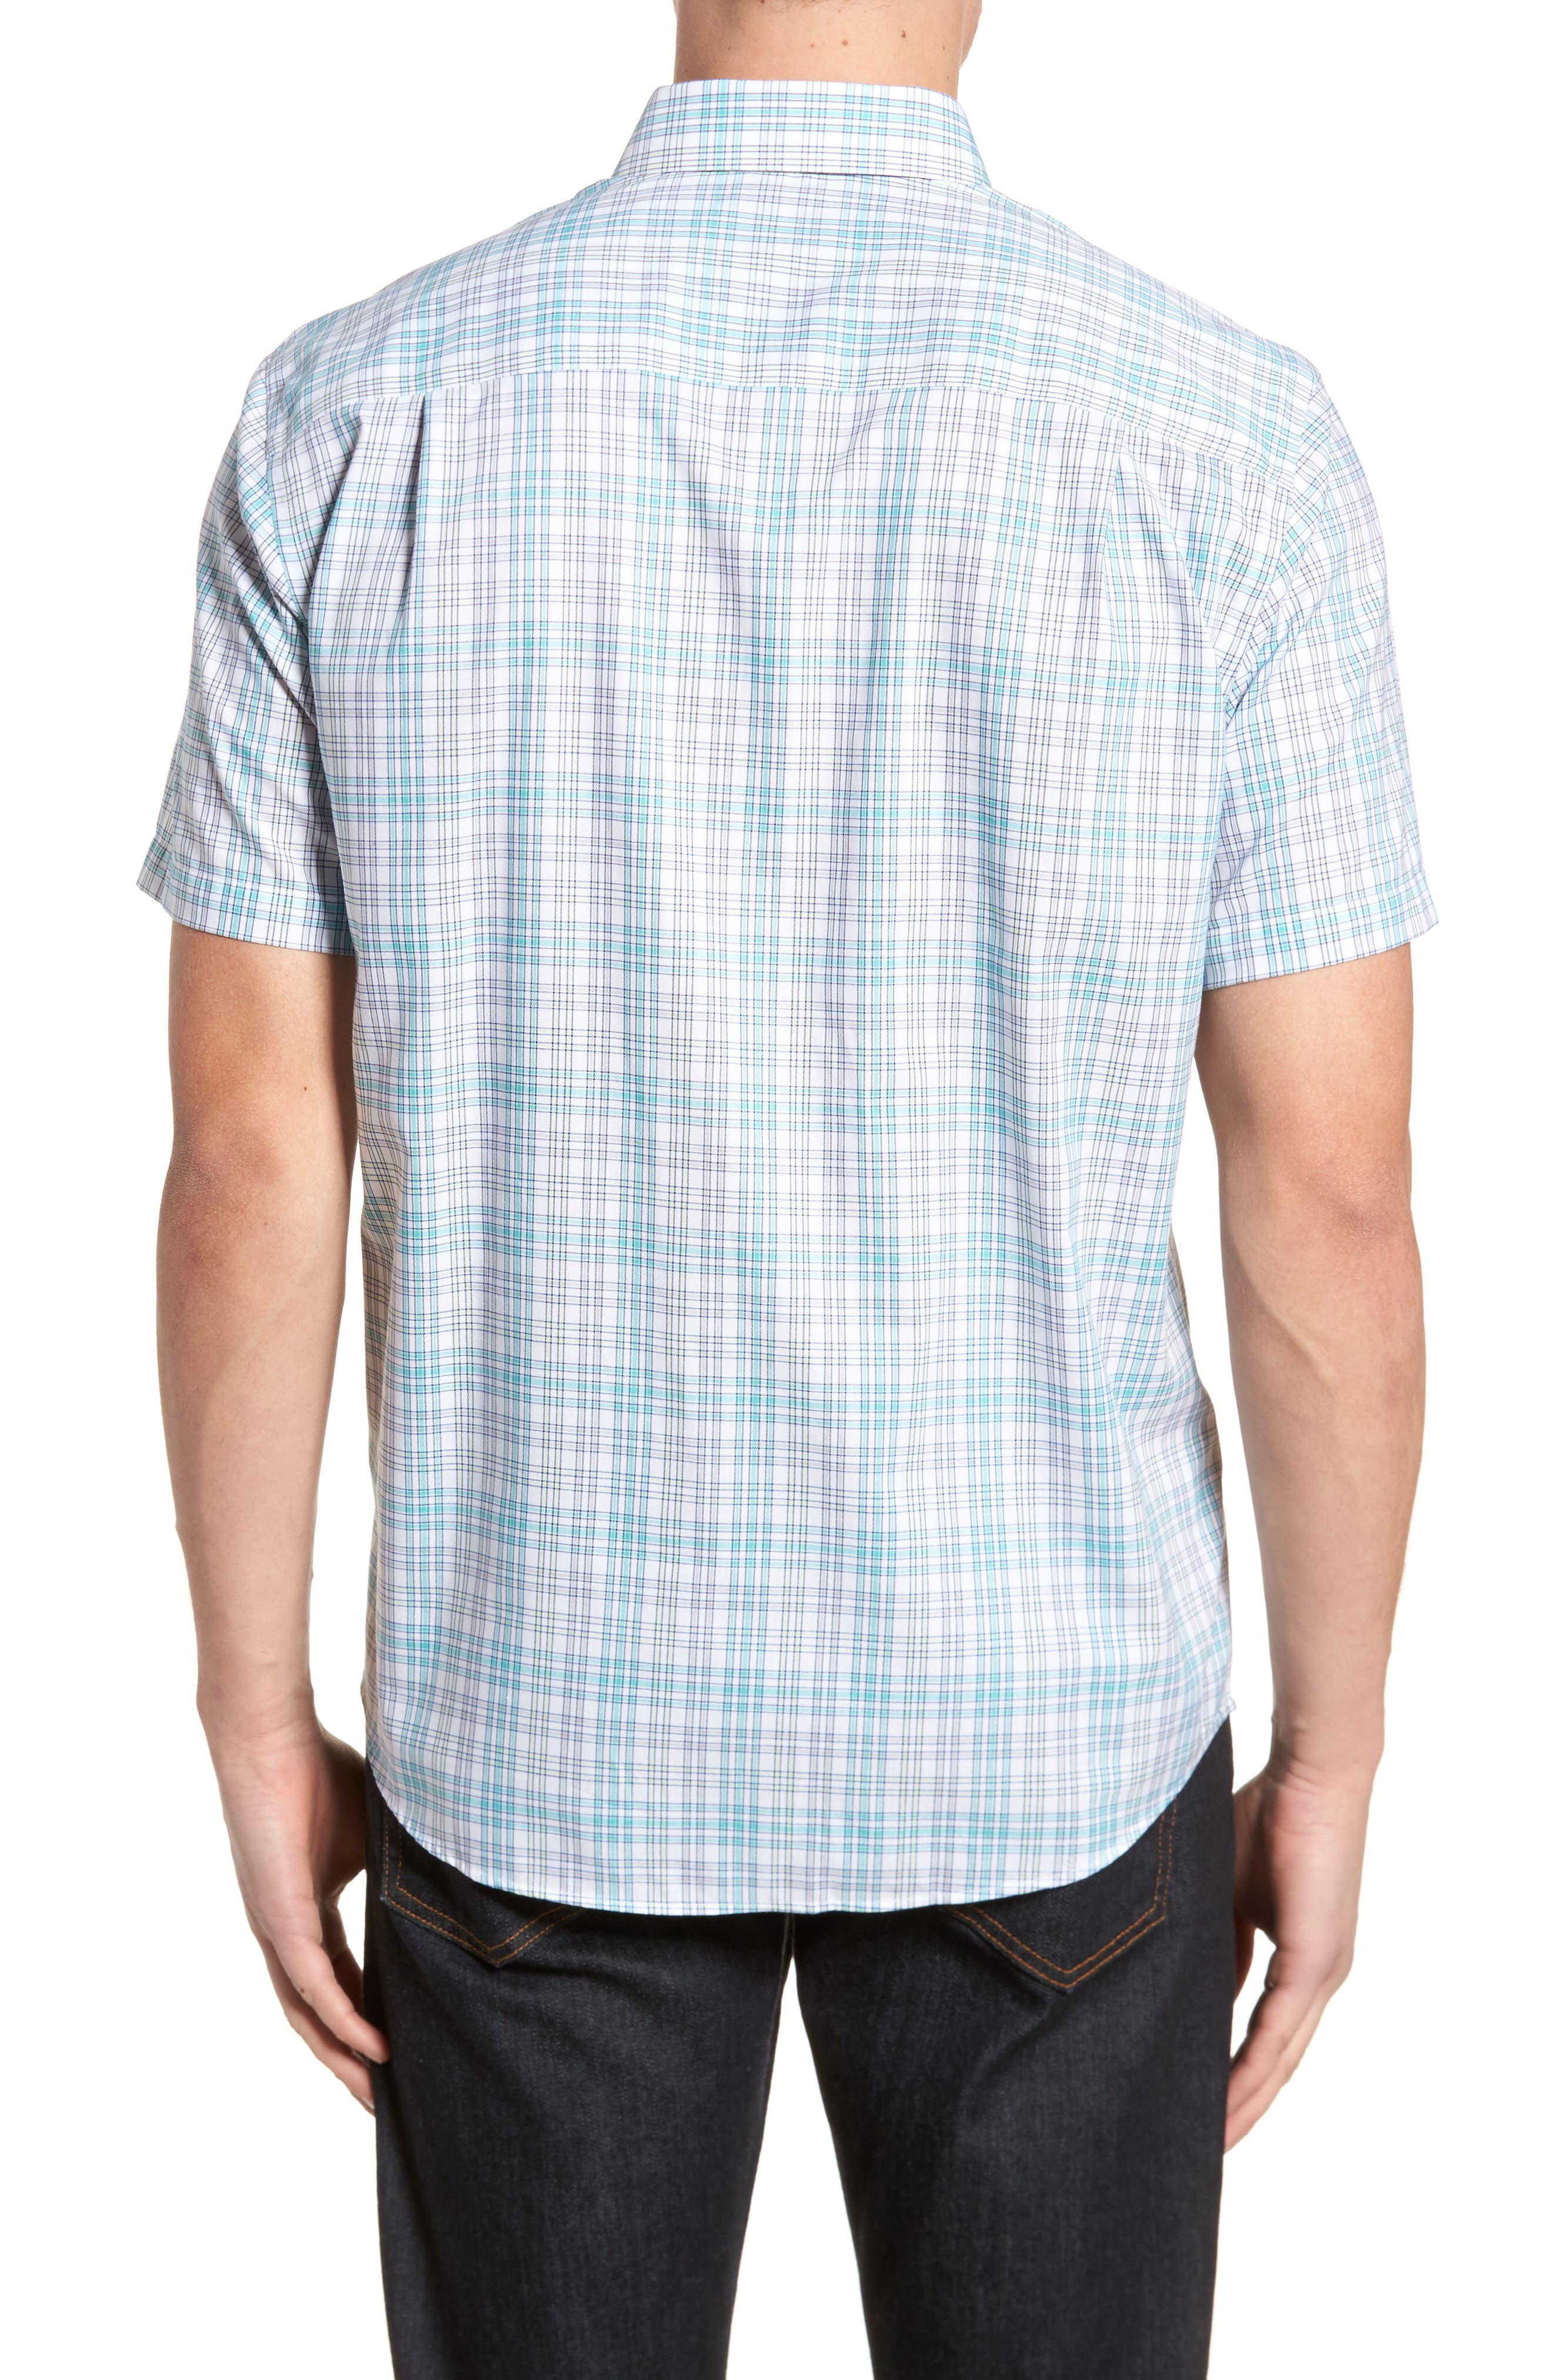 Isaac Plaid Easy Care Woven Shirt,                             Alternate thumbnail 2, color,                             328